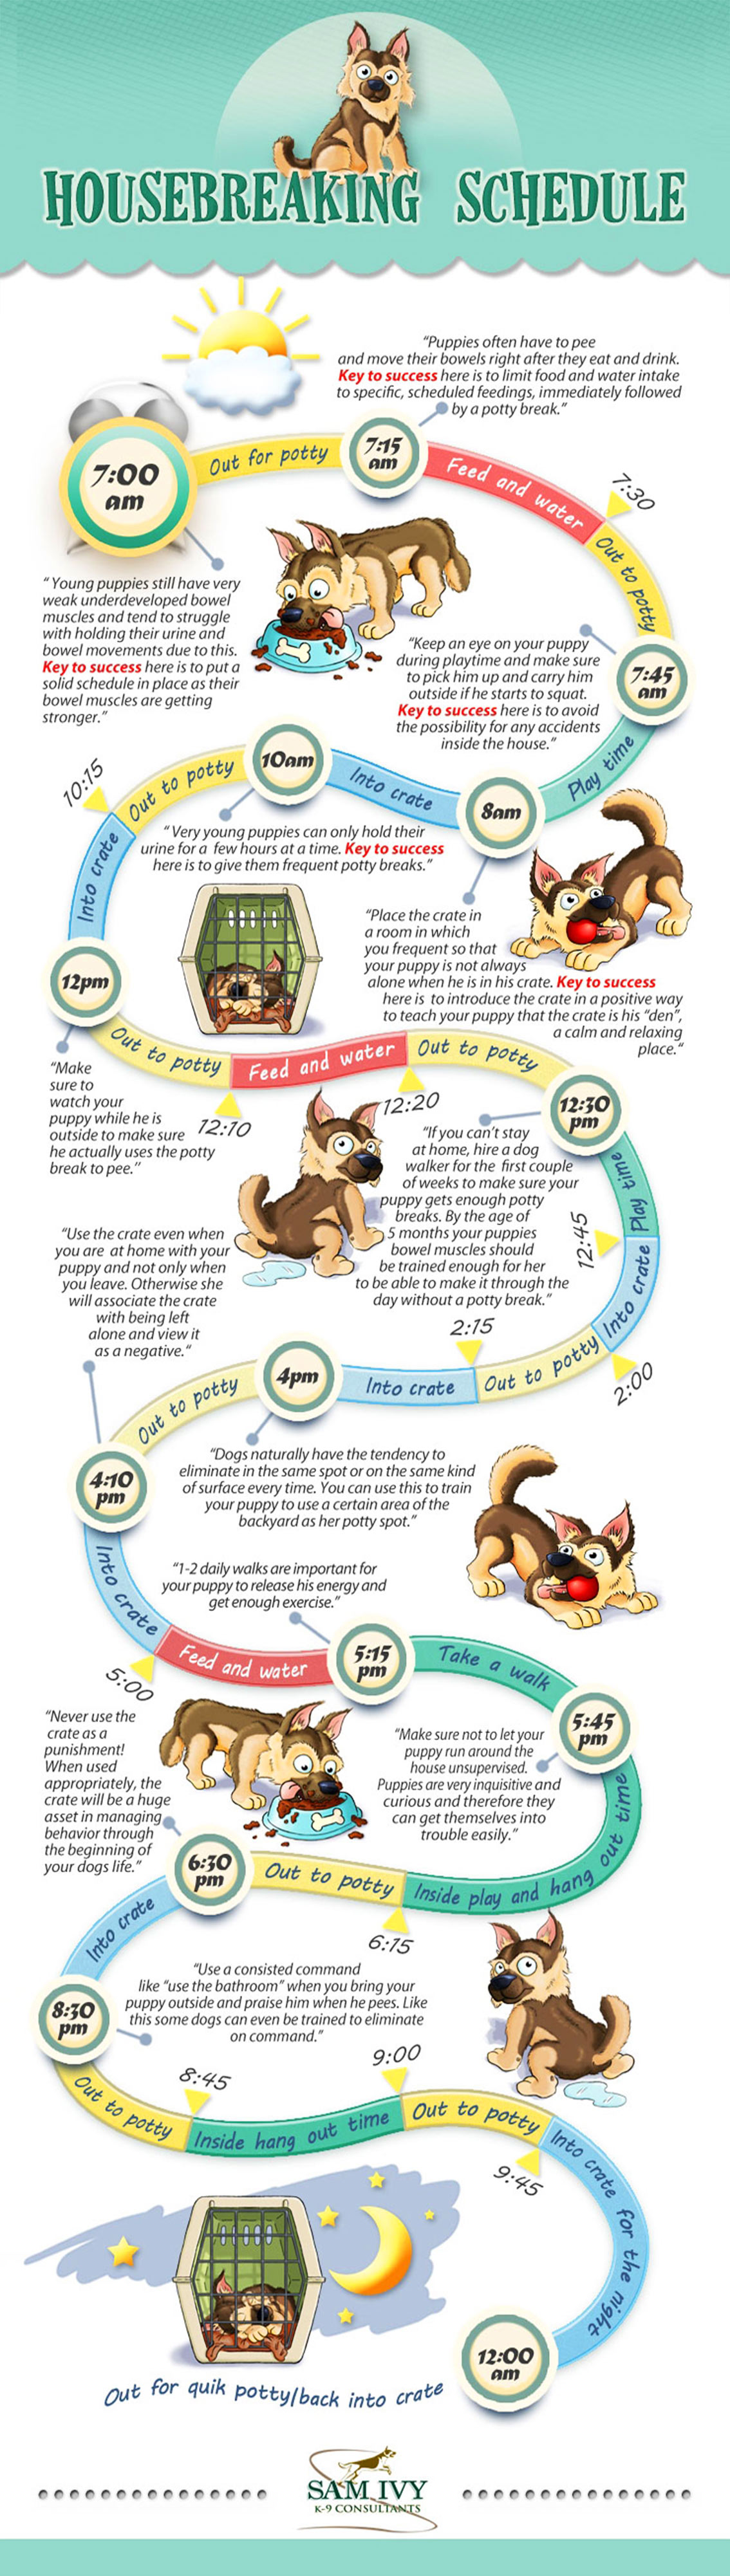 How to Housebreak a Puppy - Potty Training  infographic